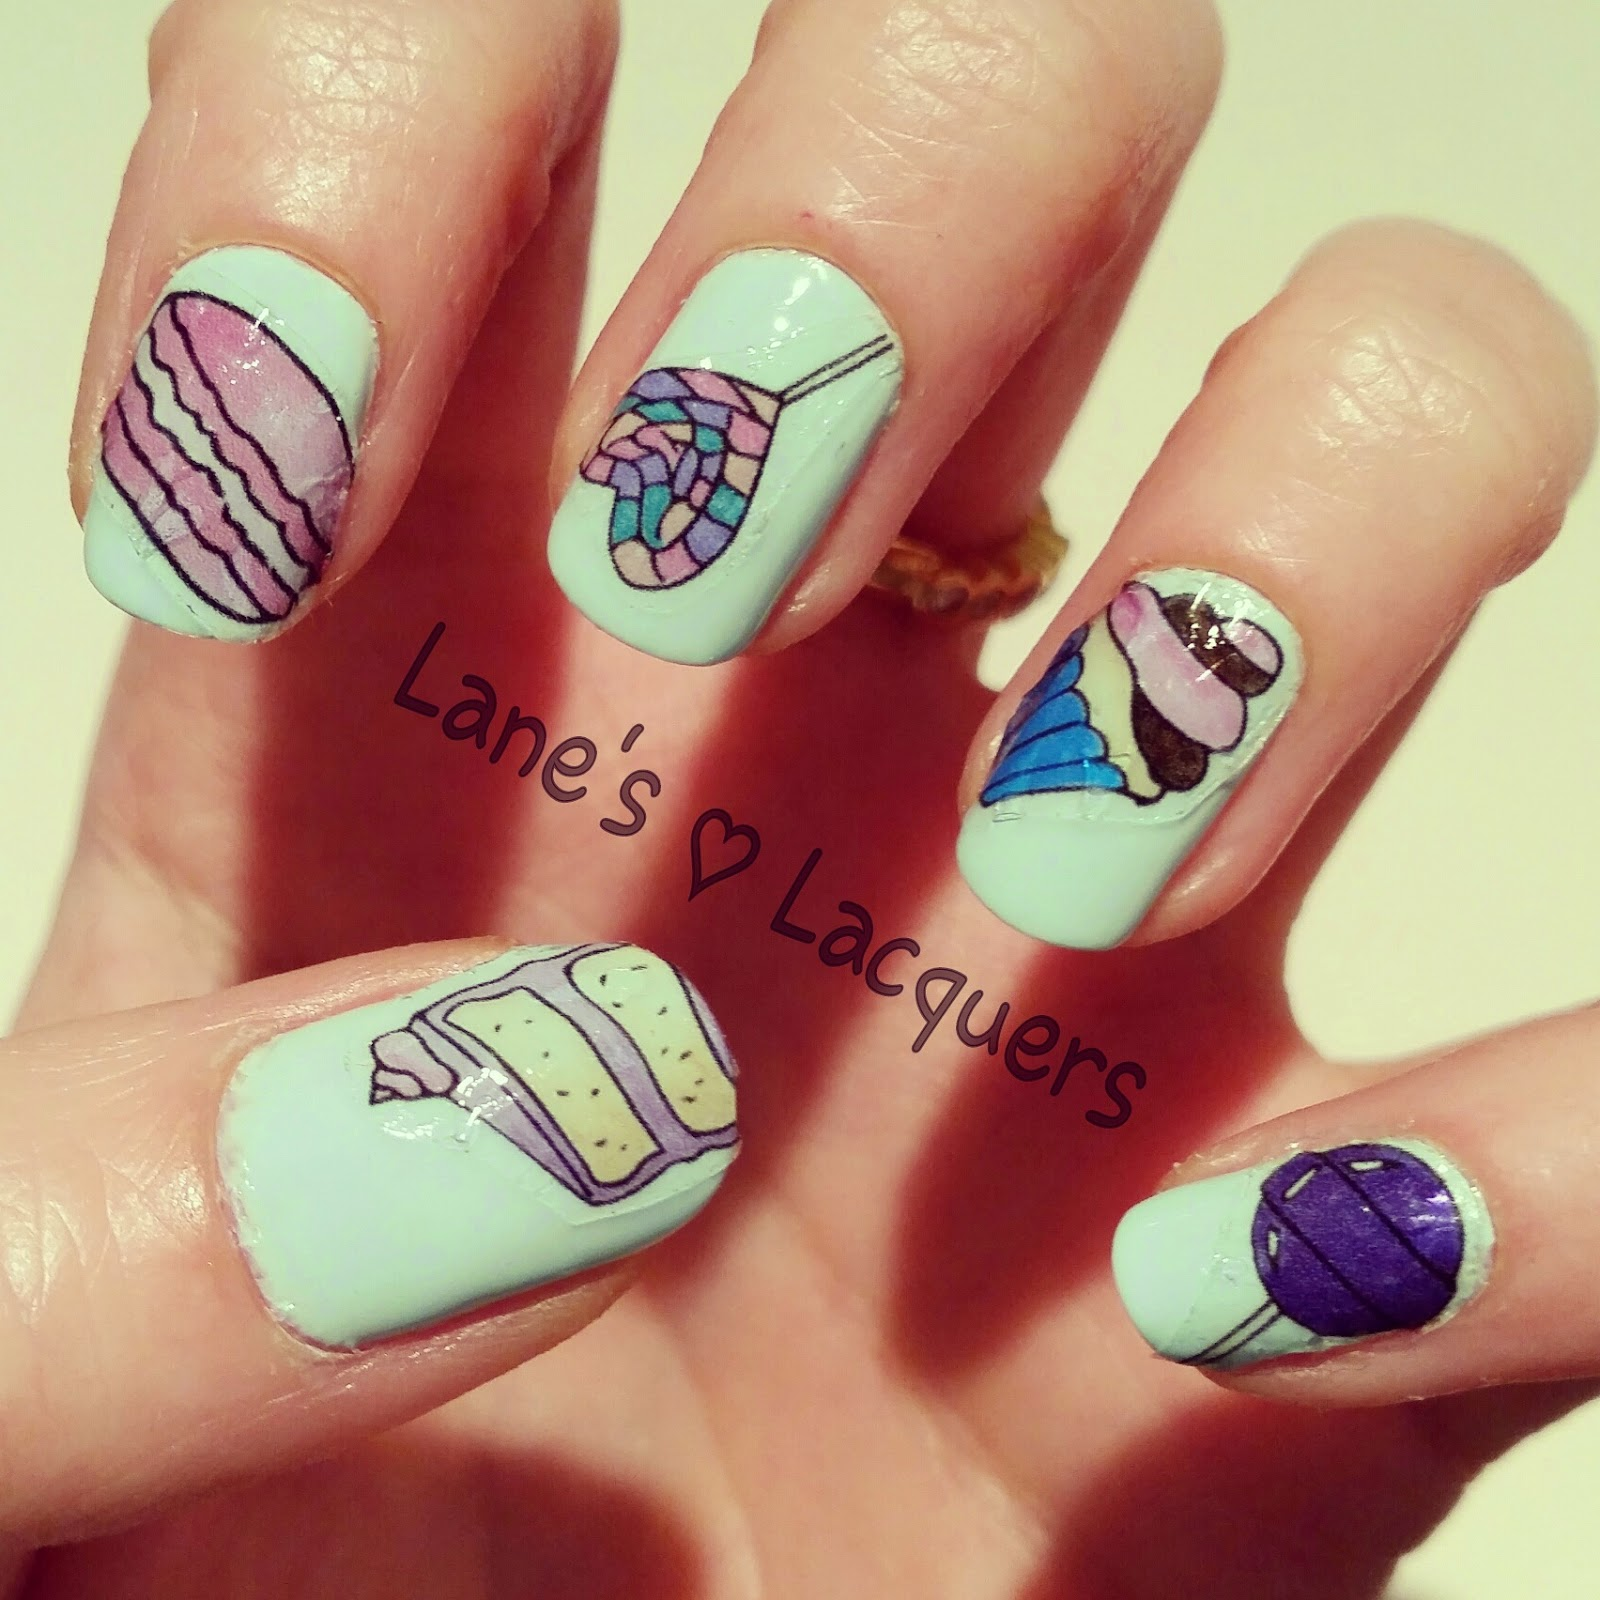 nail-doodles-sweets-cakes-water-transfer-nail-art